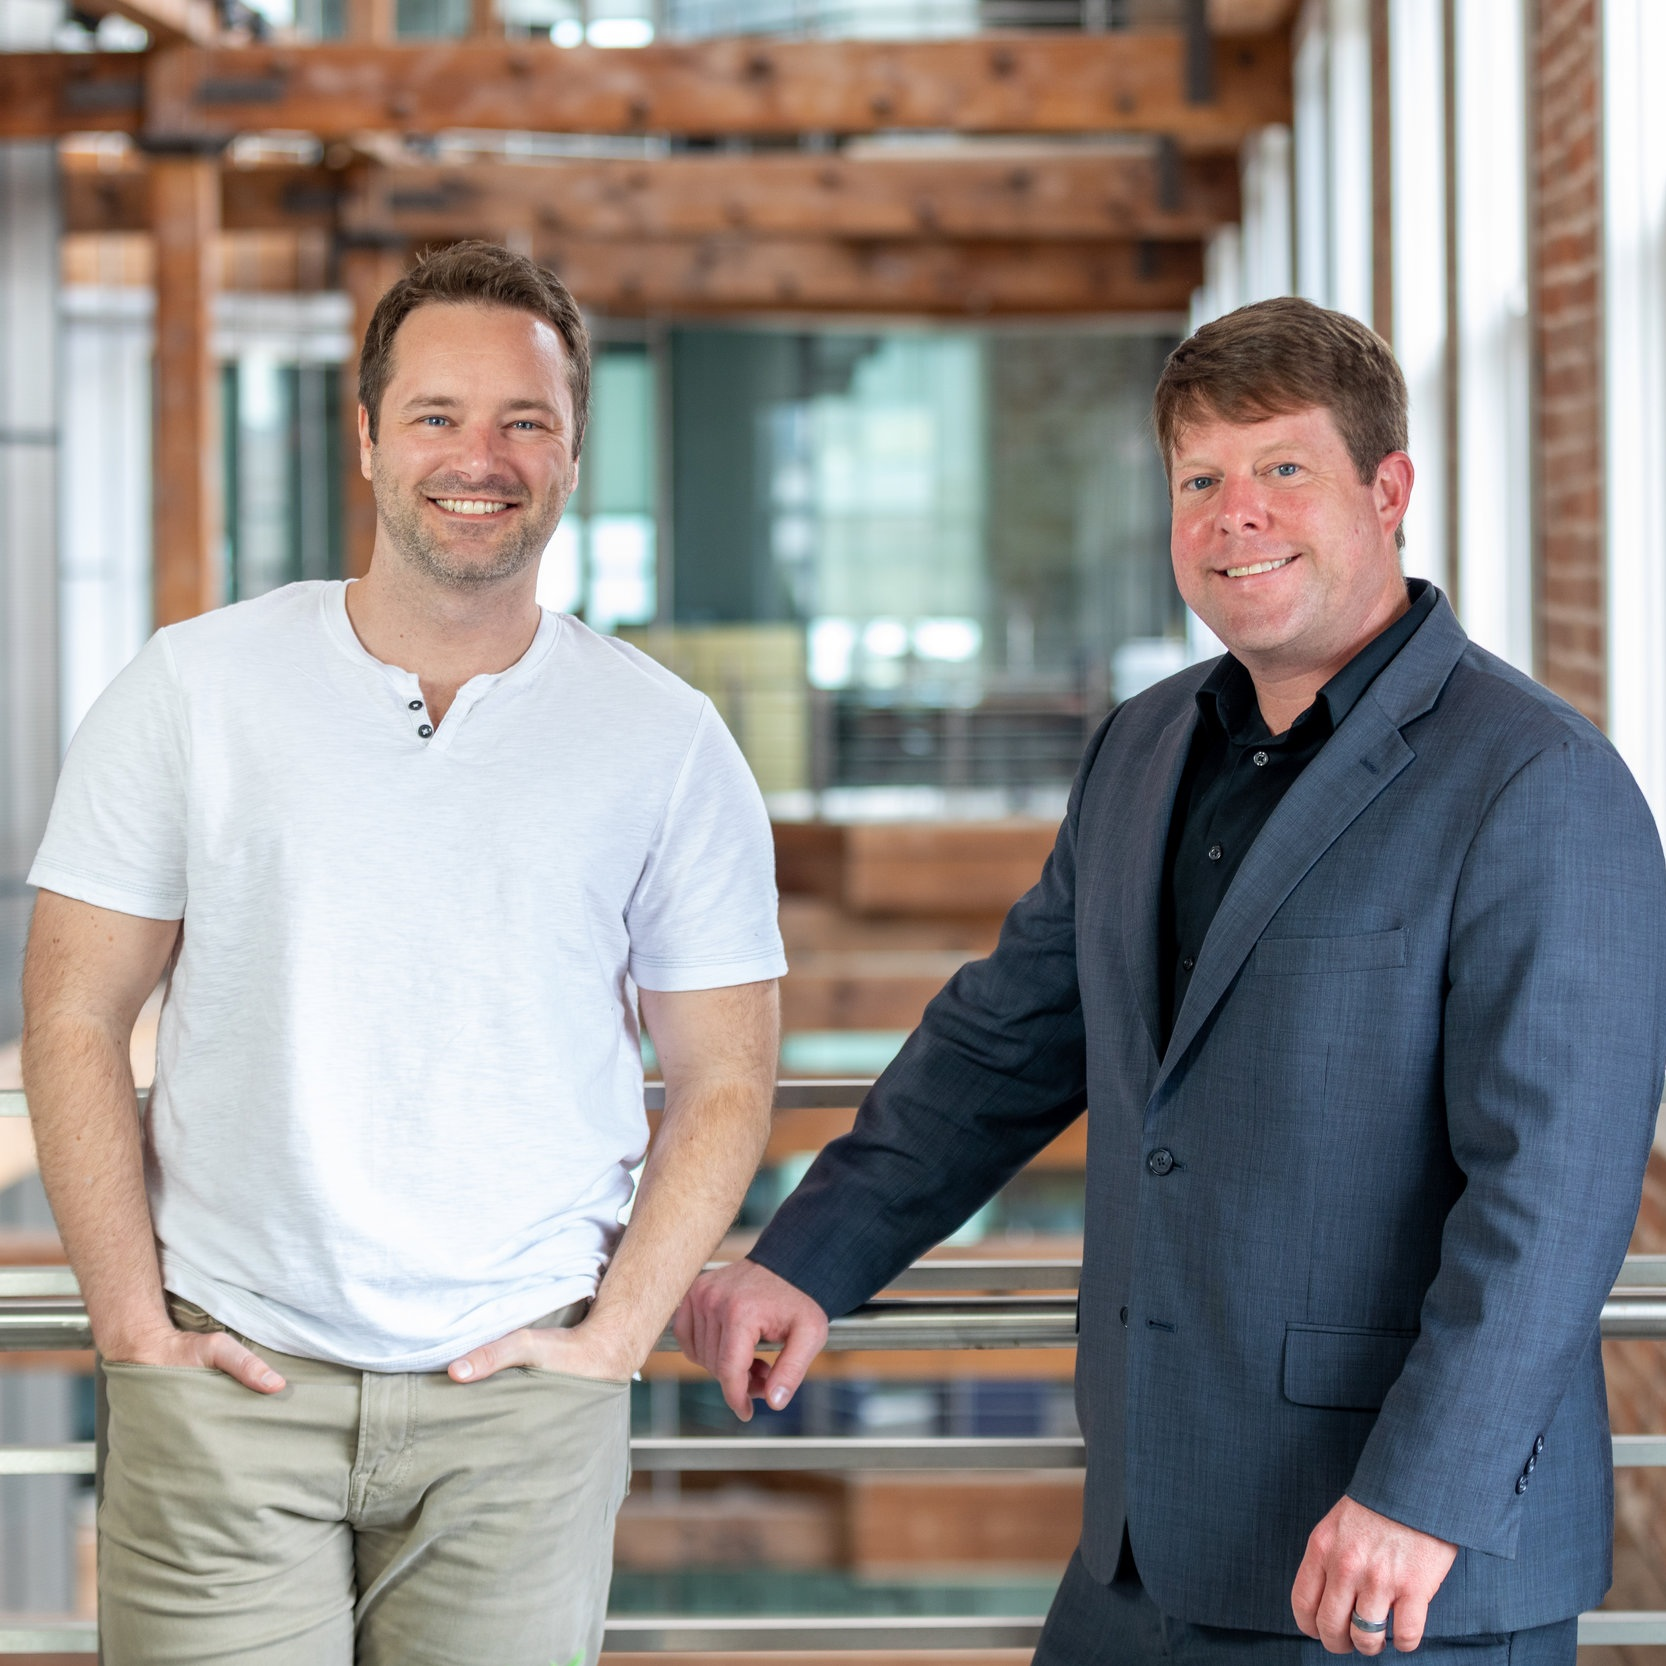 """""""I truly believe that the VILLAGEx accelerator program will prove to be the 10X+ growth boost our business needed. - Where we will be revenue wise 12 months from now is drastically higher than the trajectory we were on prior to going through the program.""""- Josh Johnston, Co-Founder Trayaway"""